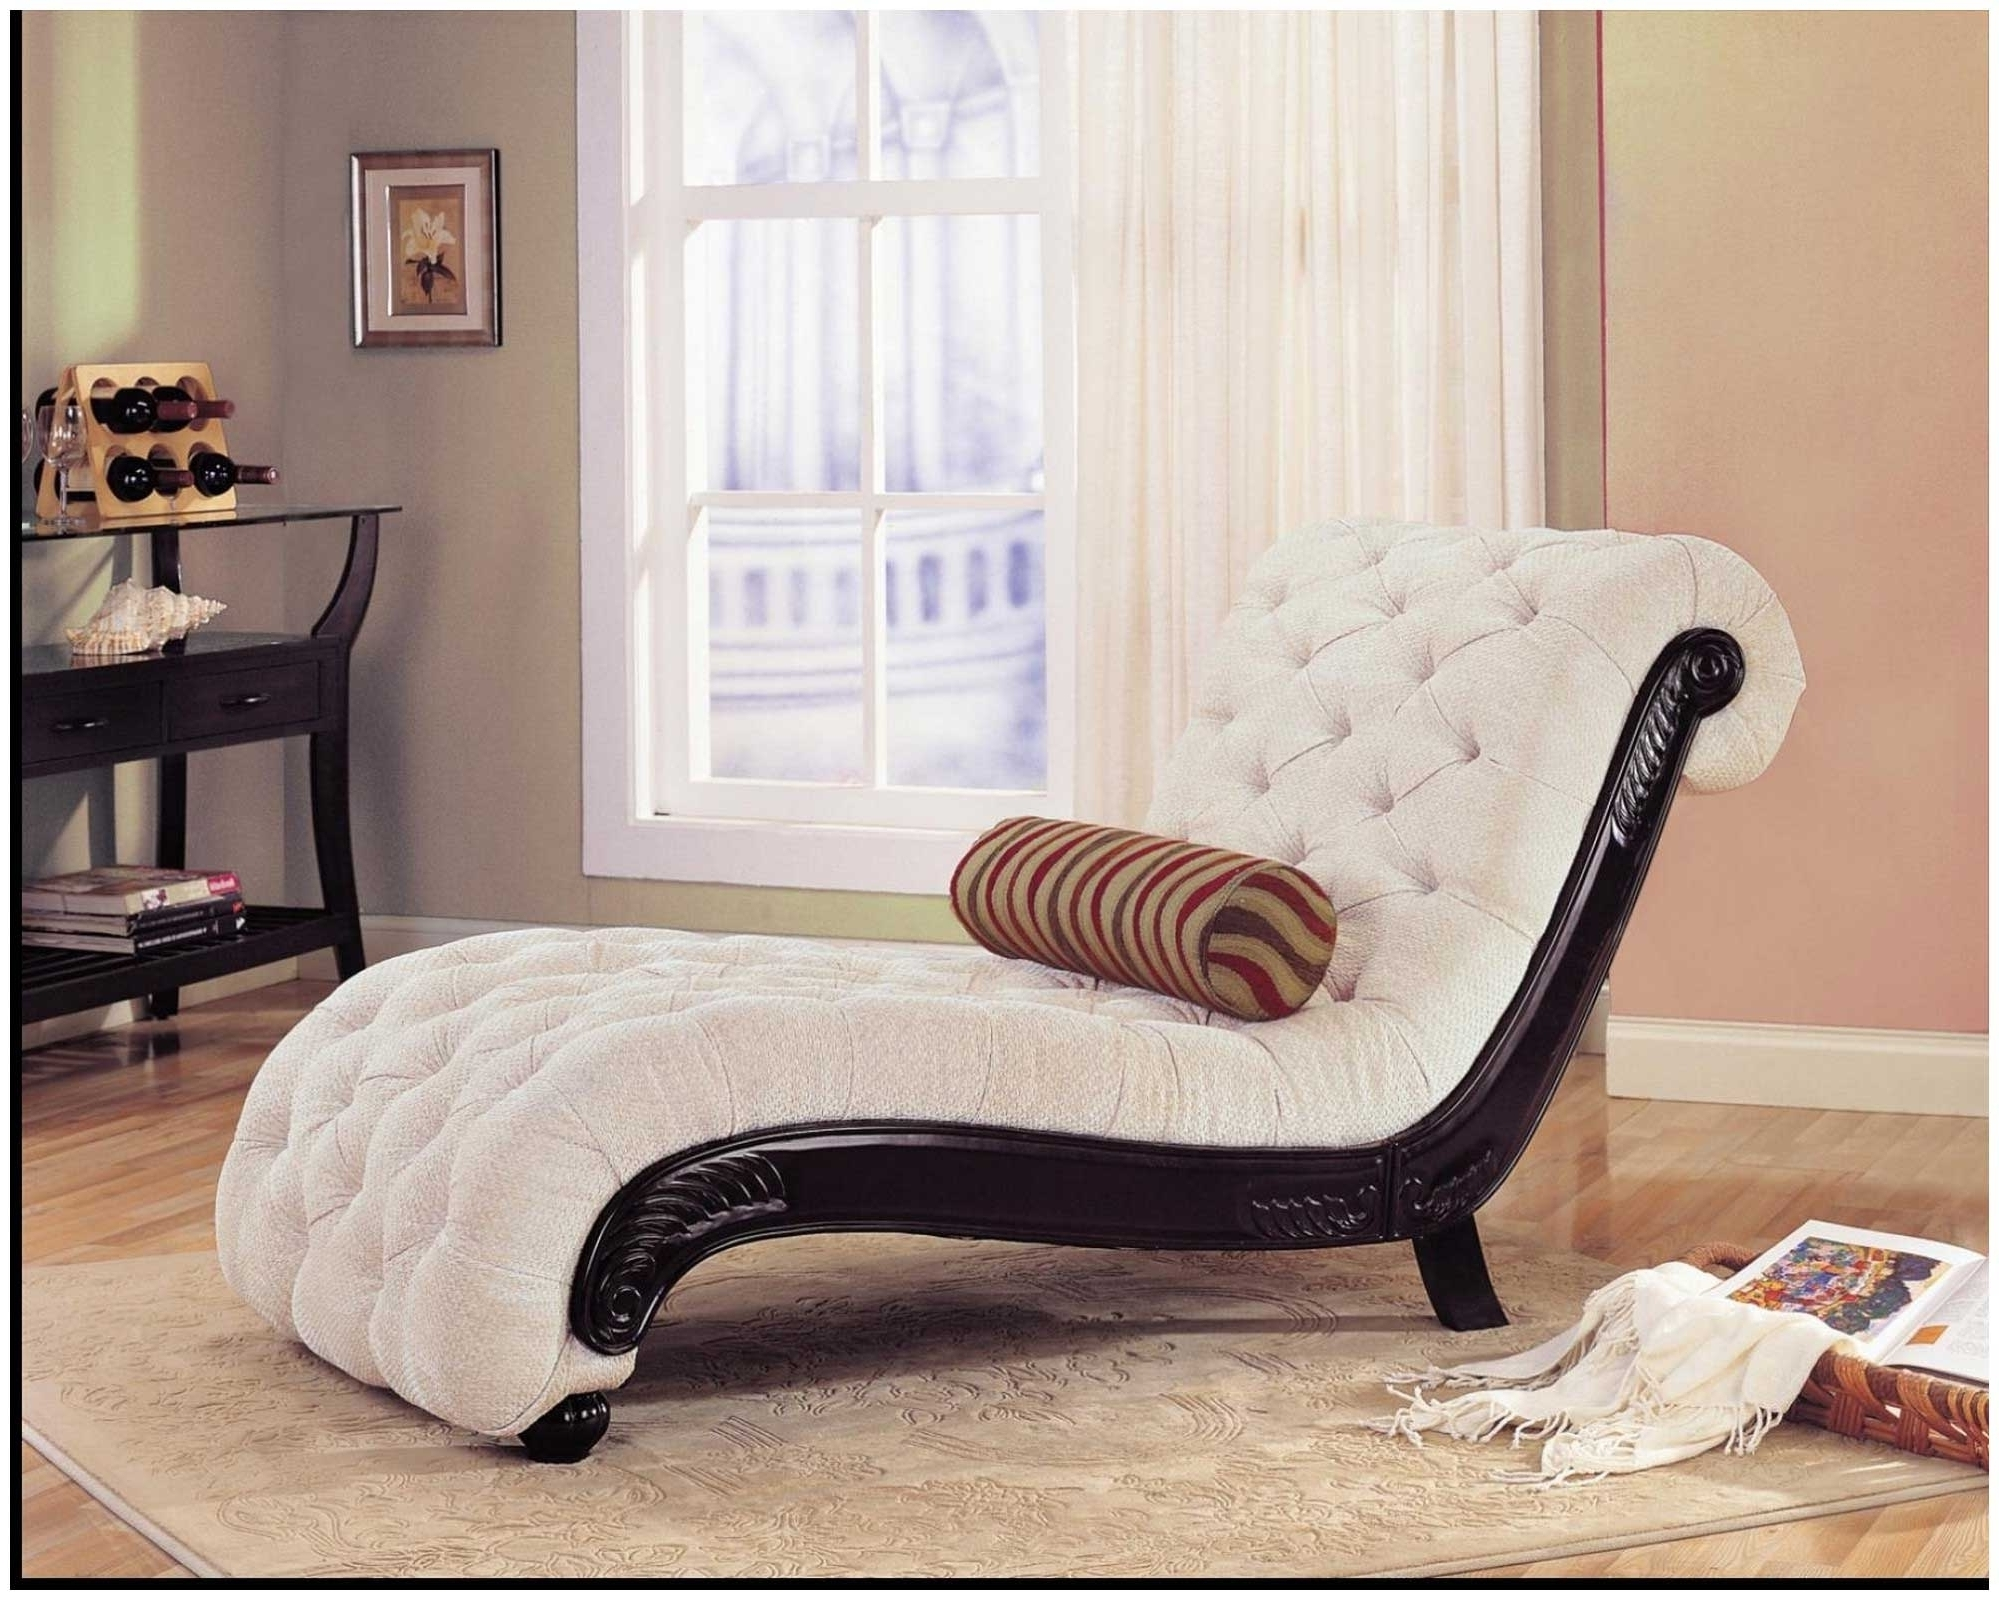 Current Bedroom Chaise Lounge For Your Nice Bedroom — Home Design Blog For Bedroom Chaise Lounges (View 13 of 15)